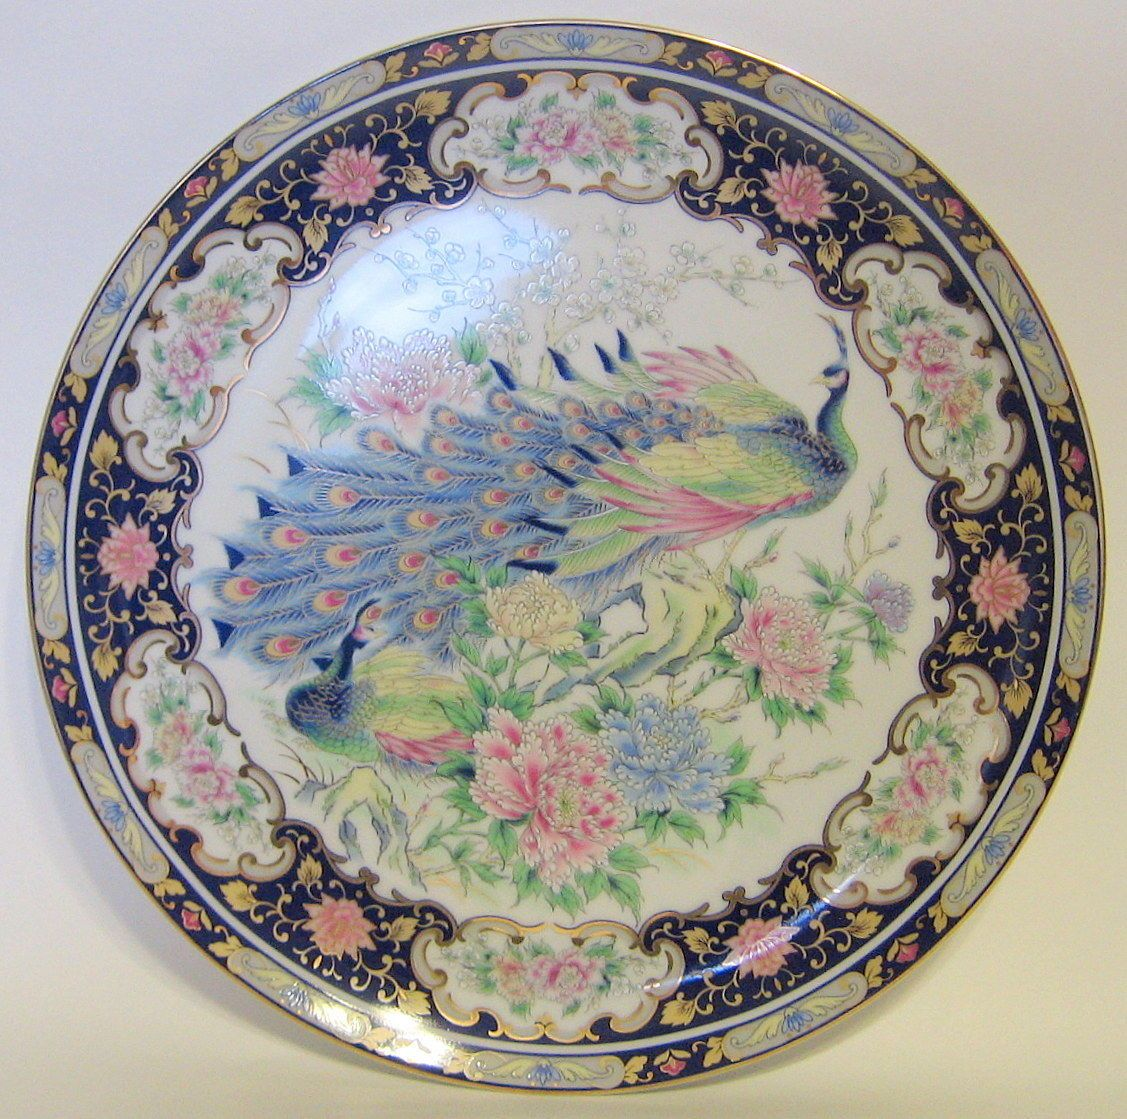 4 Inch Decorative Wall Plates Endearing Japanese Toyo Peacock Porcelain Plate Decorative Vintage 1970S 10 Design Inspiration